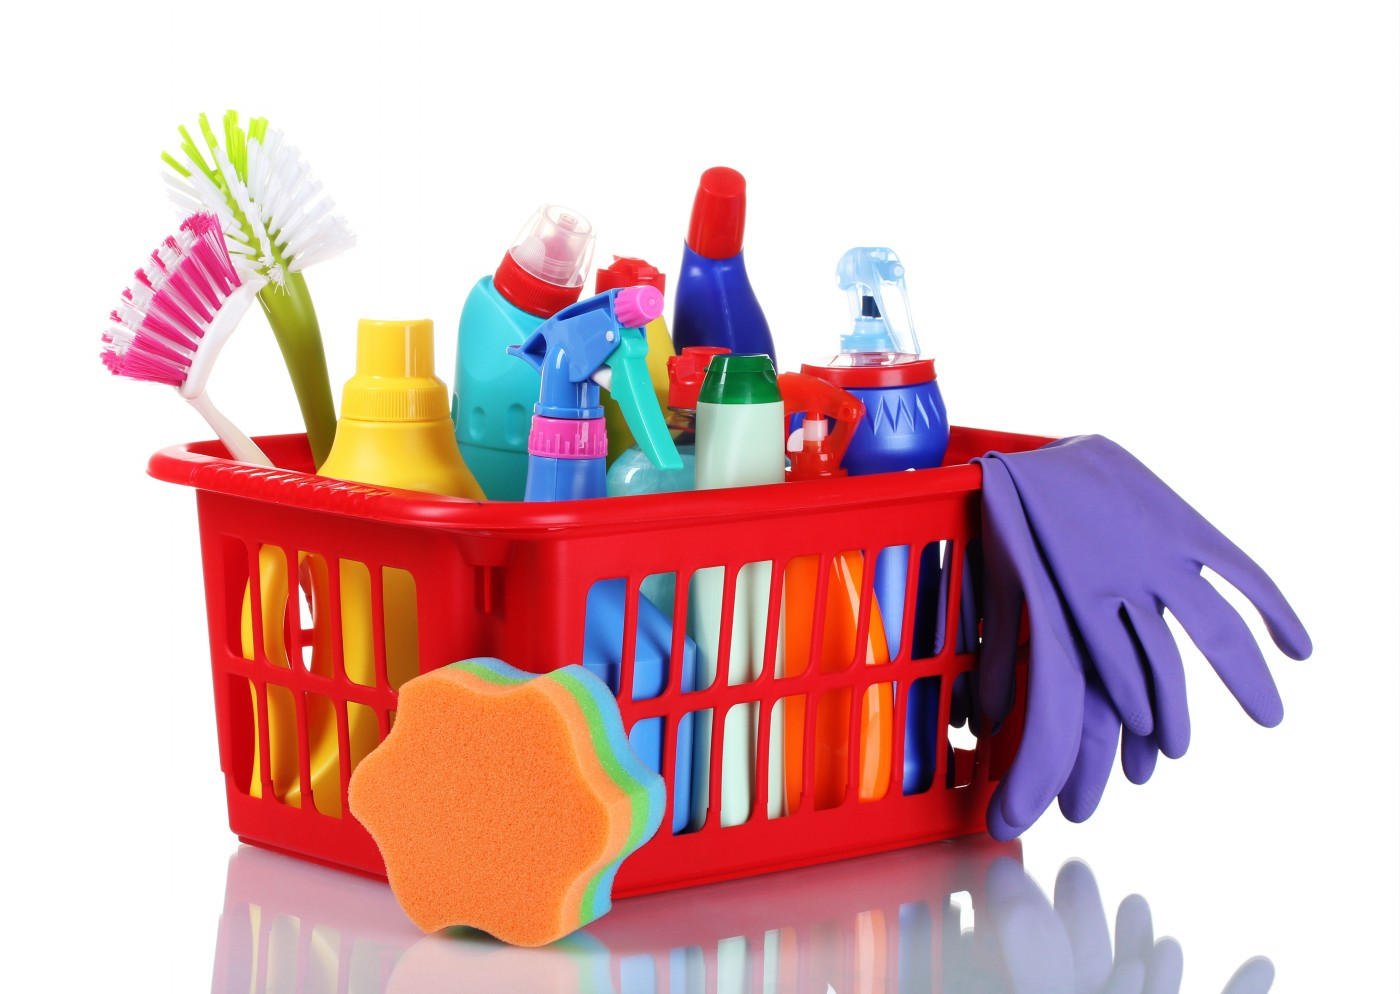 List of Cleaning Supplies for a Home Photo 1. Simple List of Cleaning Supplies for a Home with Pictures   Elsoar